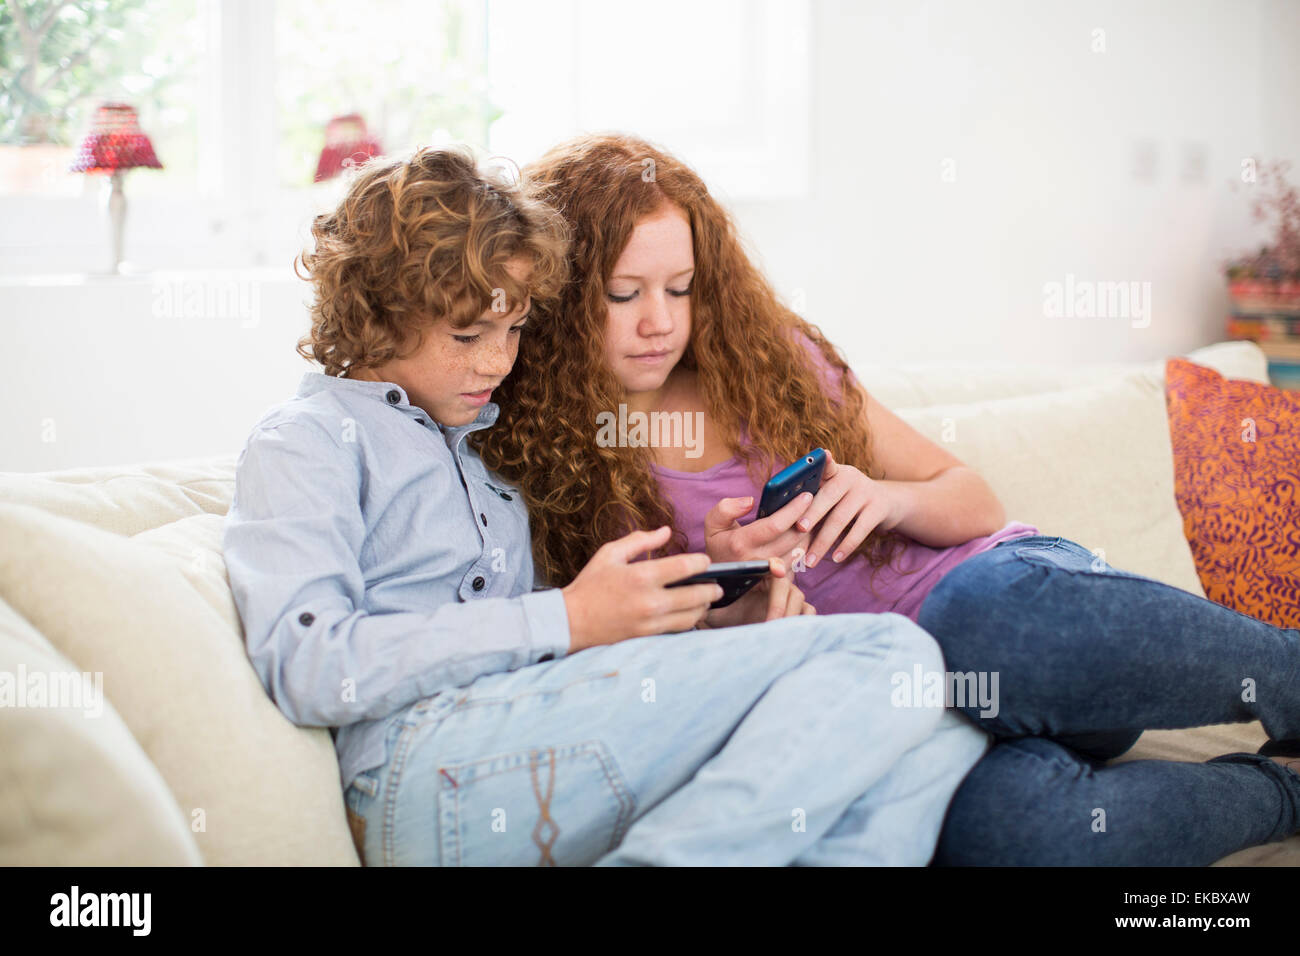 Siblings playing with handheld computer game on couch - Stock Image